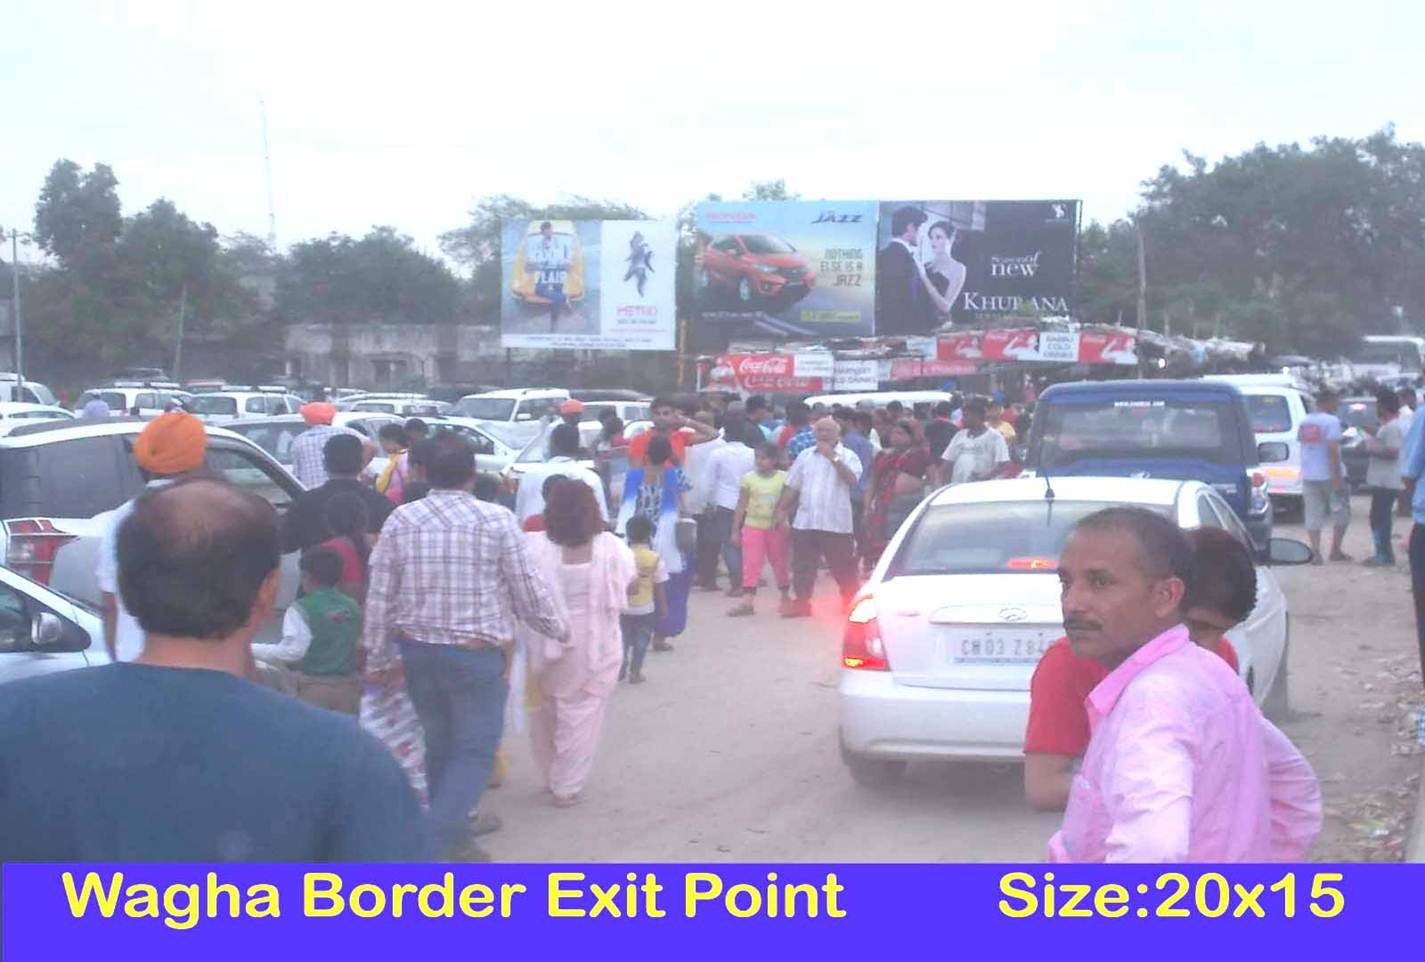 Wagha Border Main Exit Point, Amritsar